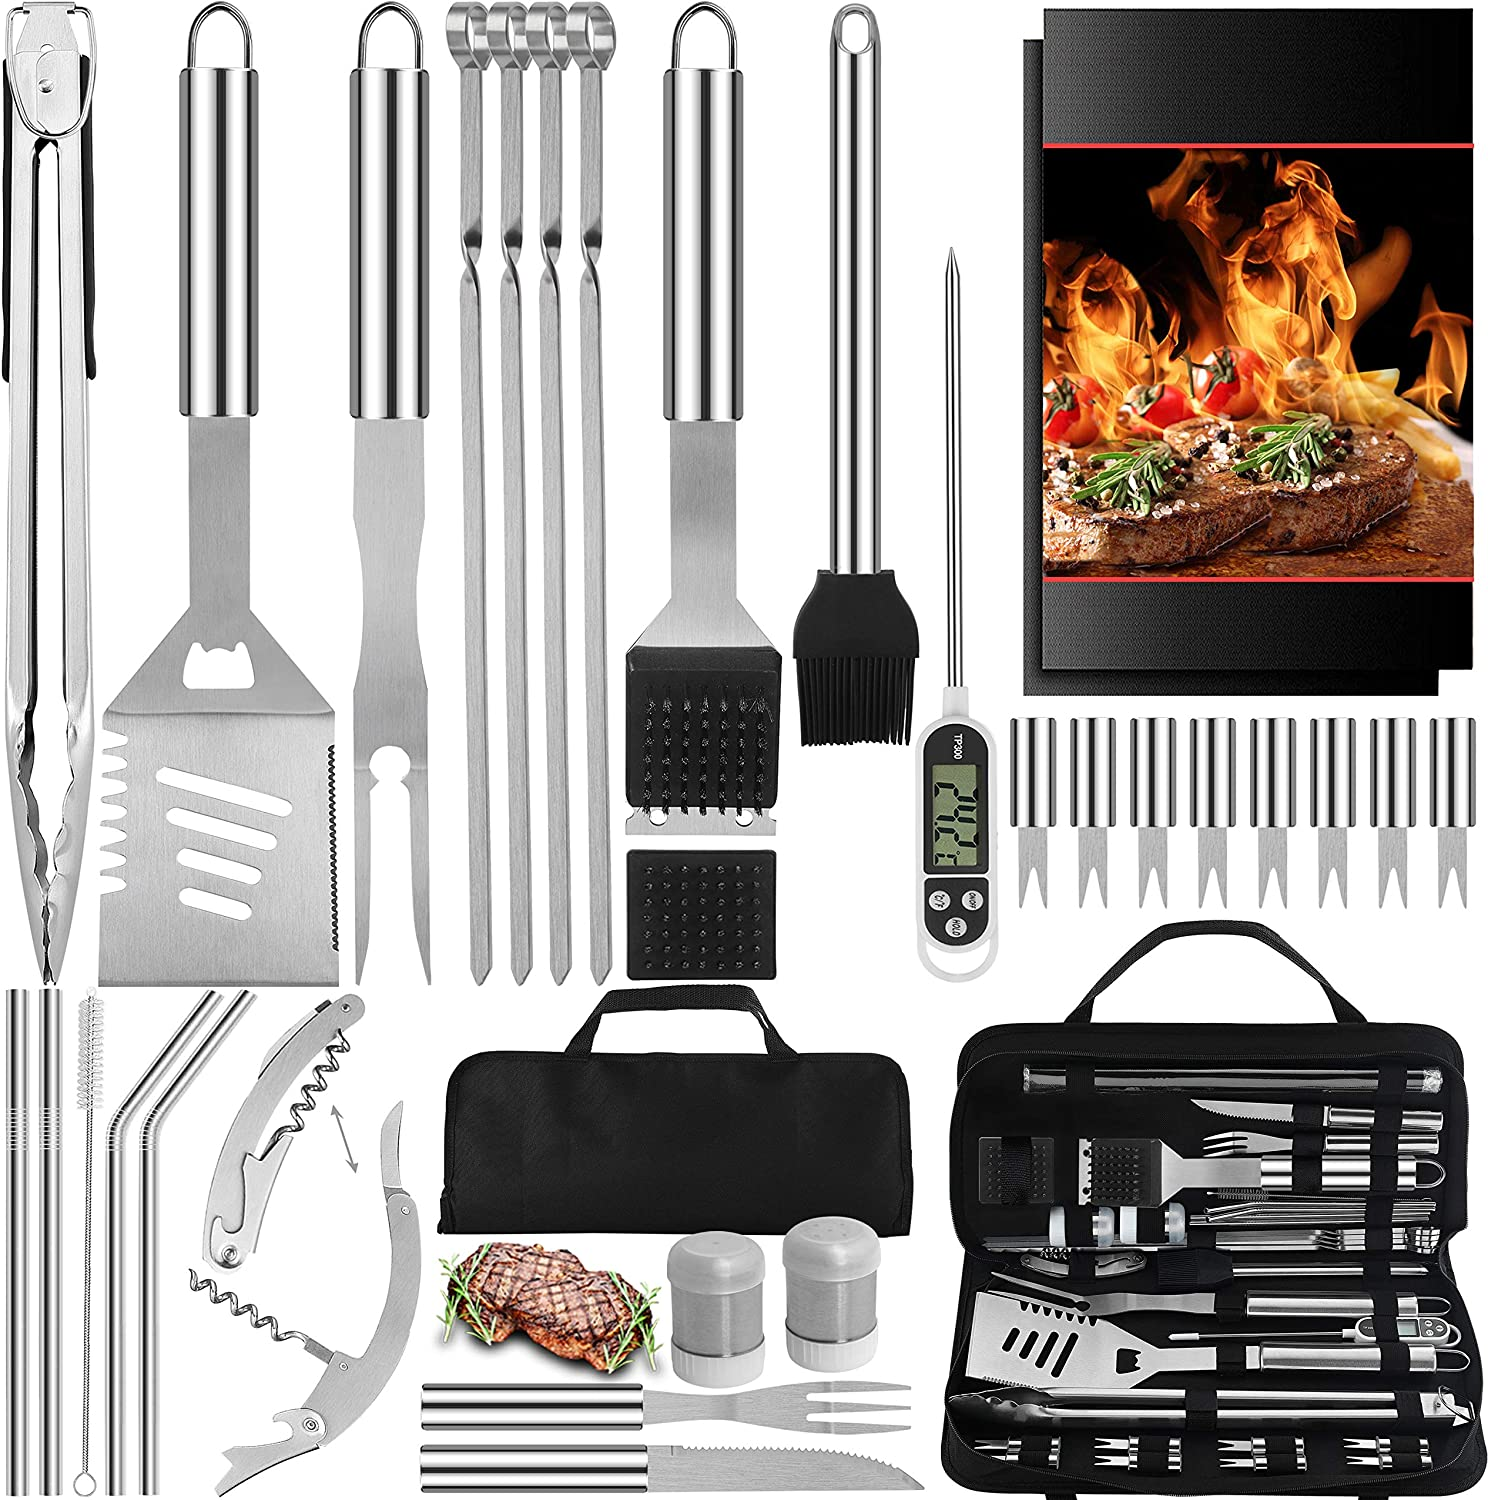 2 Pc Set Under The Grill Mat /& Grilling Spatula by New Pig Gift for Dad 3 x 5 Outdoor Grill Pad /& 18 BBQ Spatula BBQ Grill Set Gift for Dad